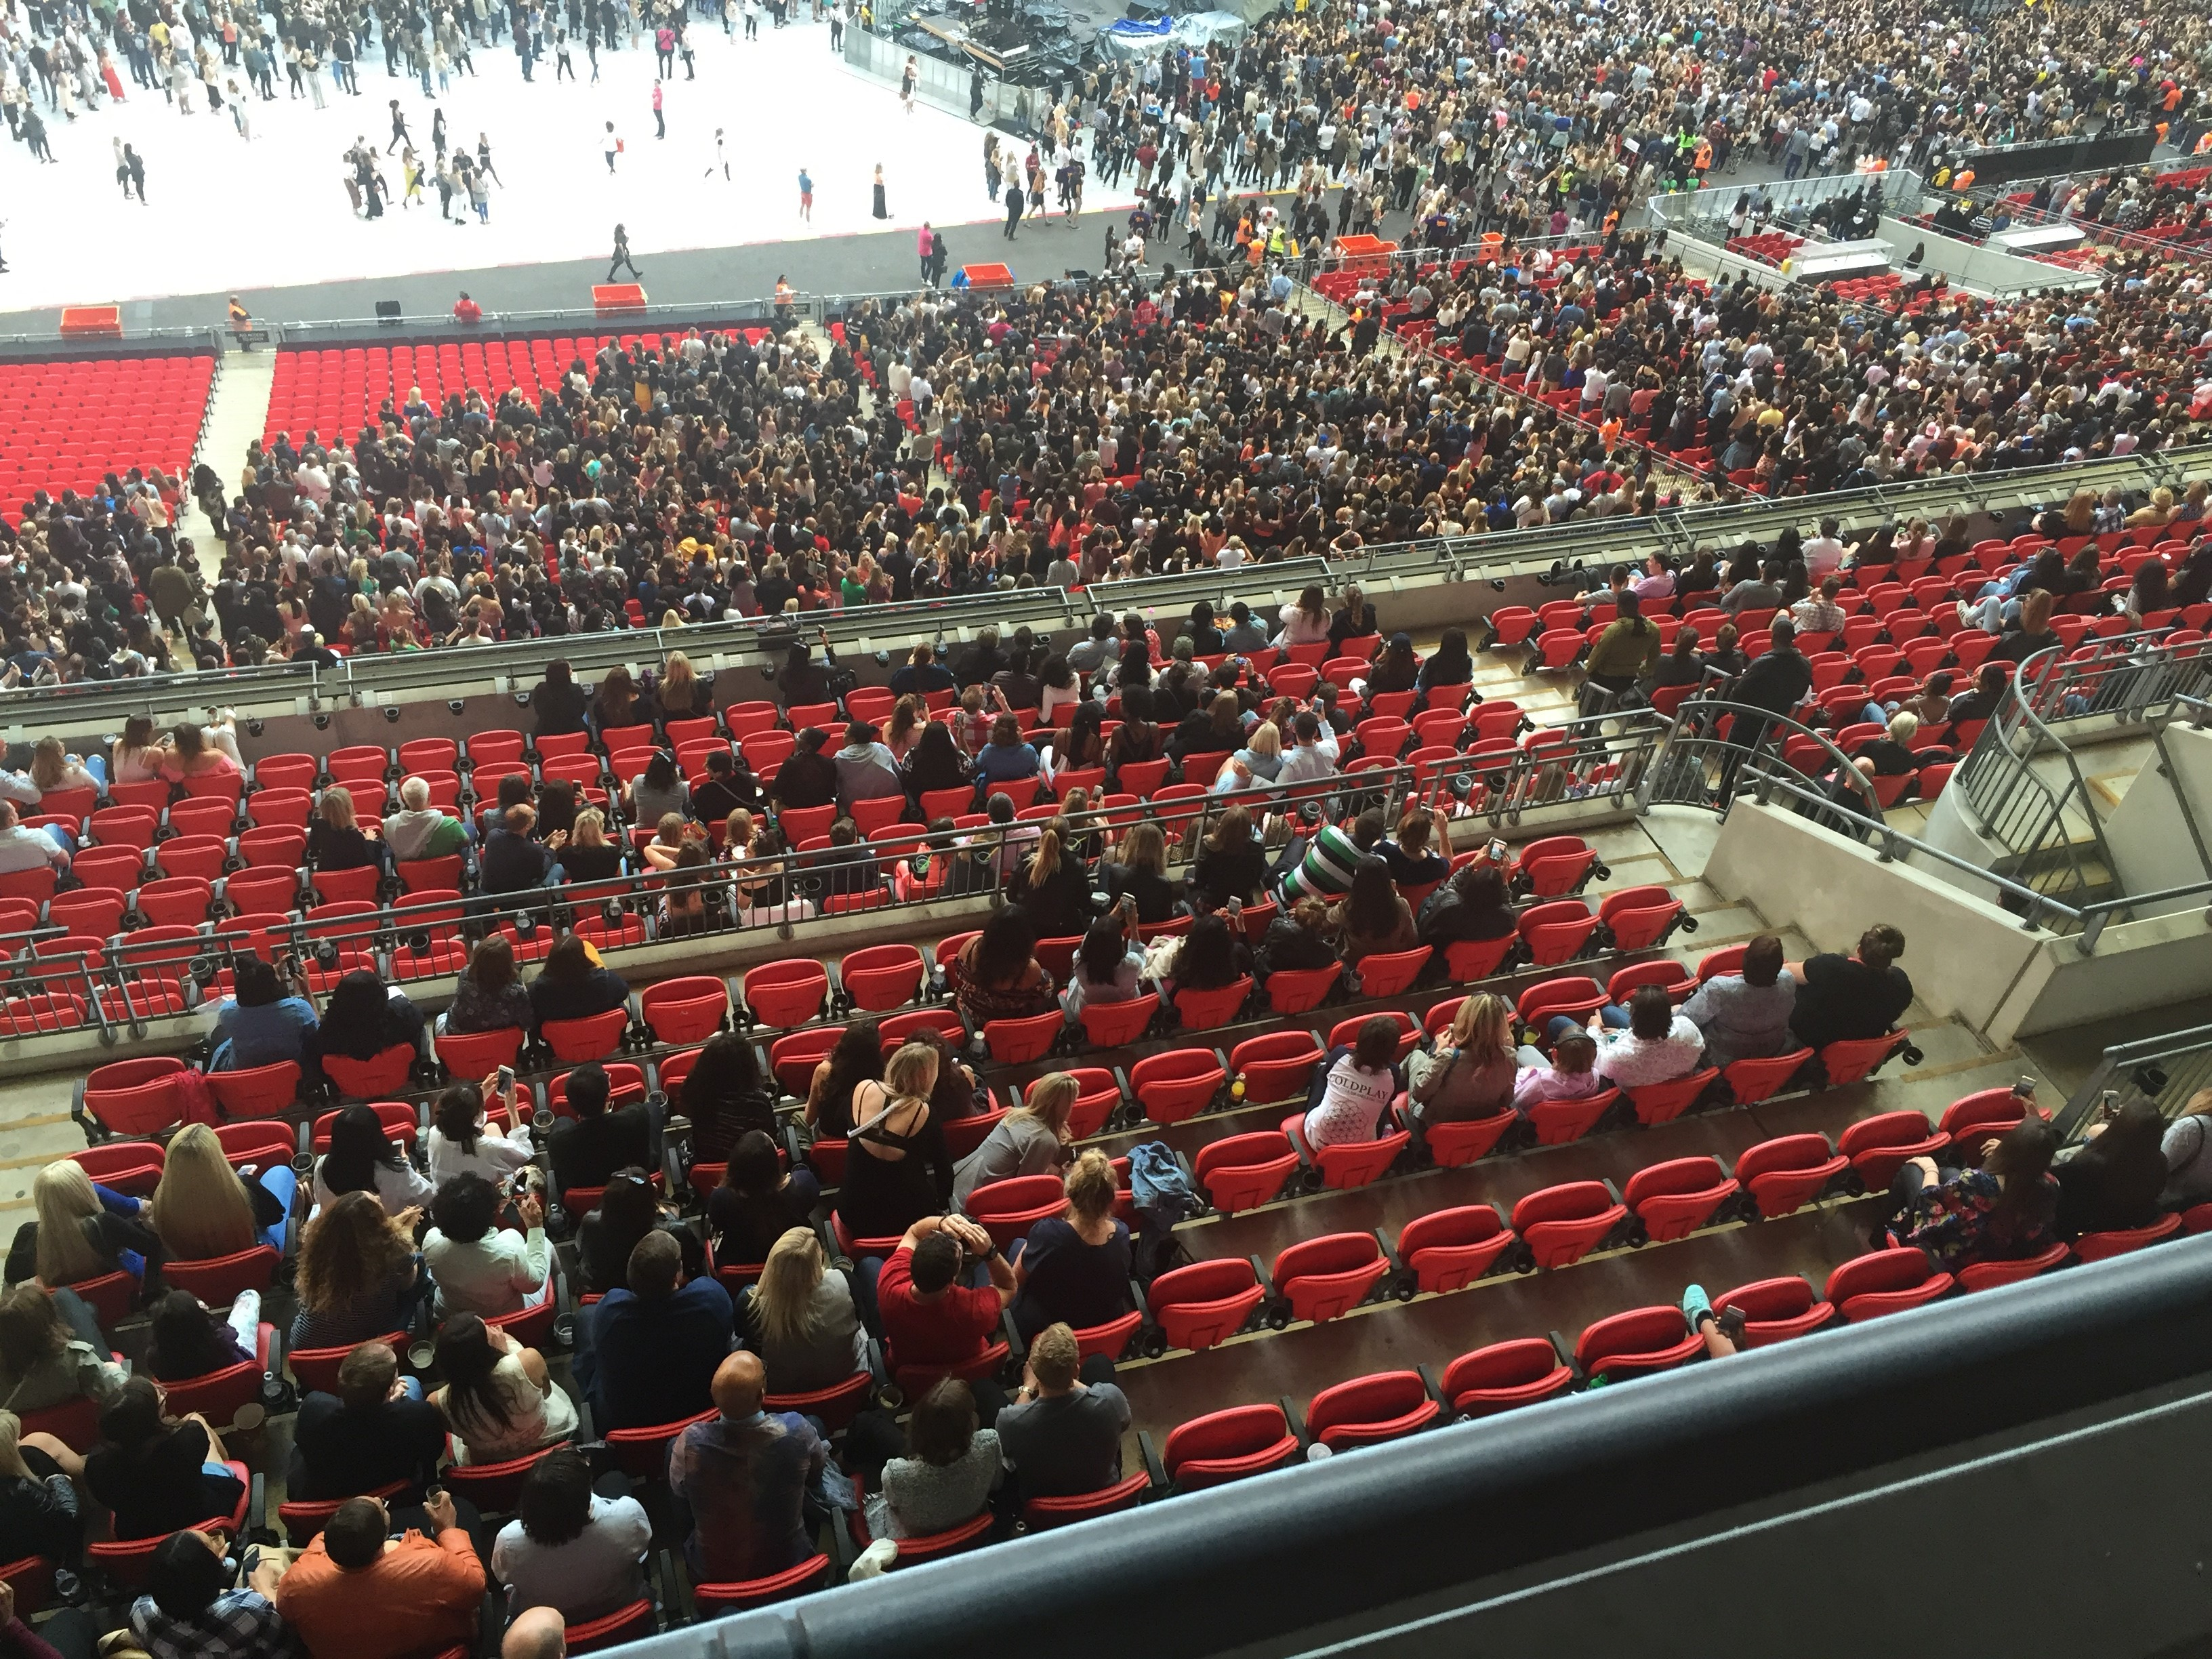 Beyonce's Wembley Stadium shows were sold out  – so why were there so many empty seats?